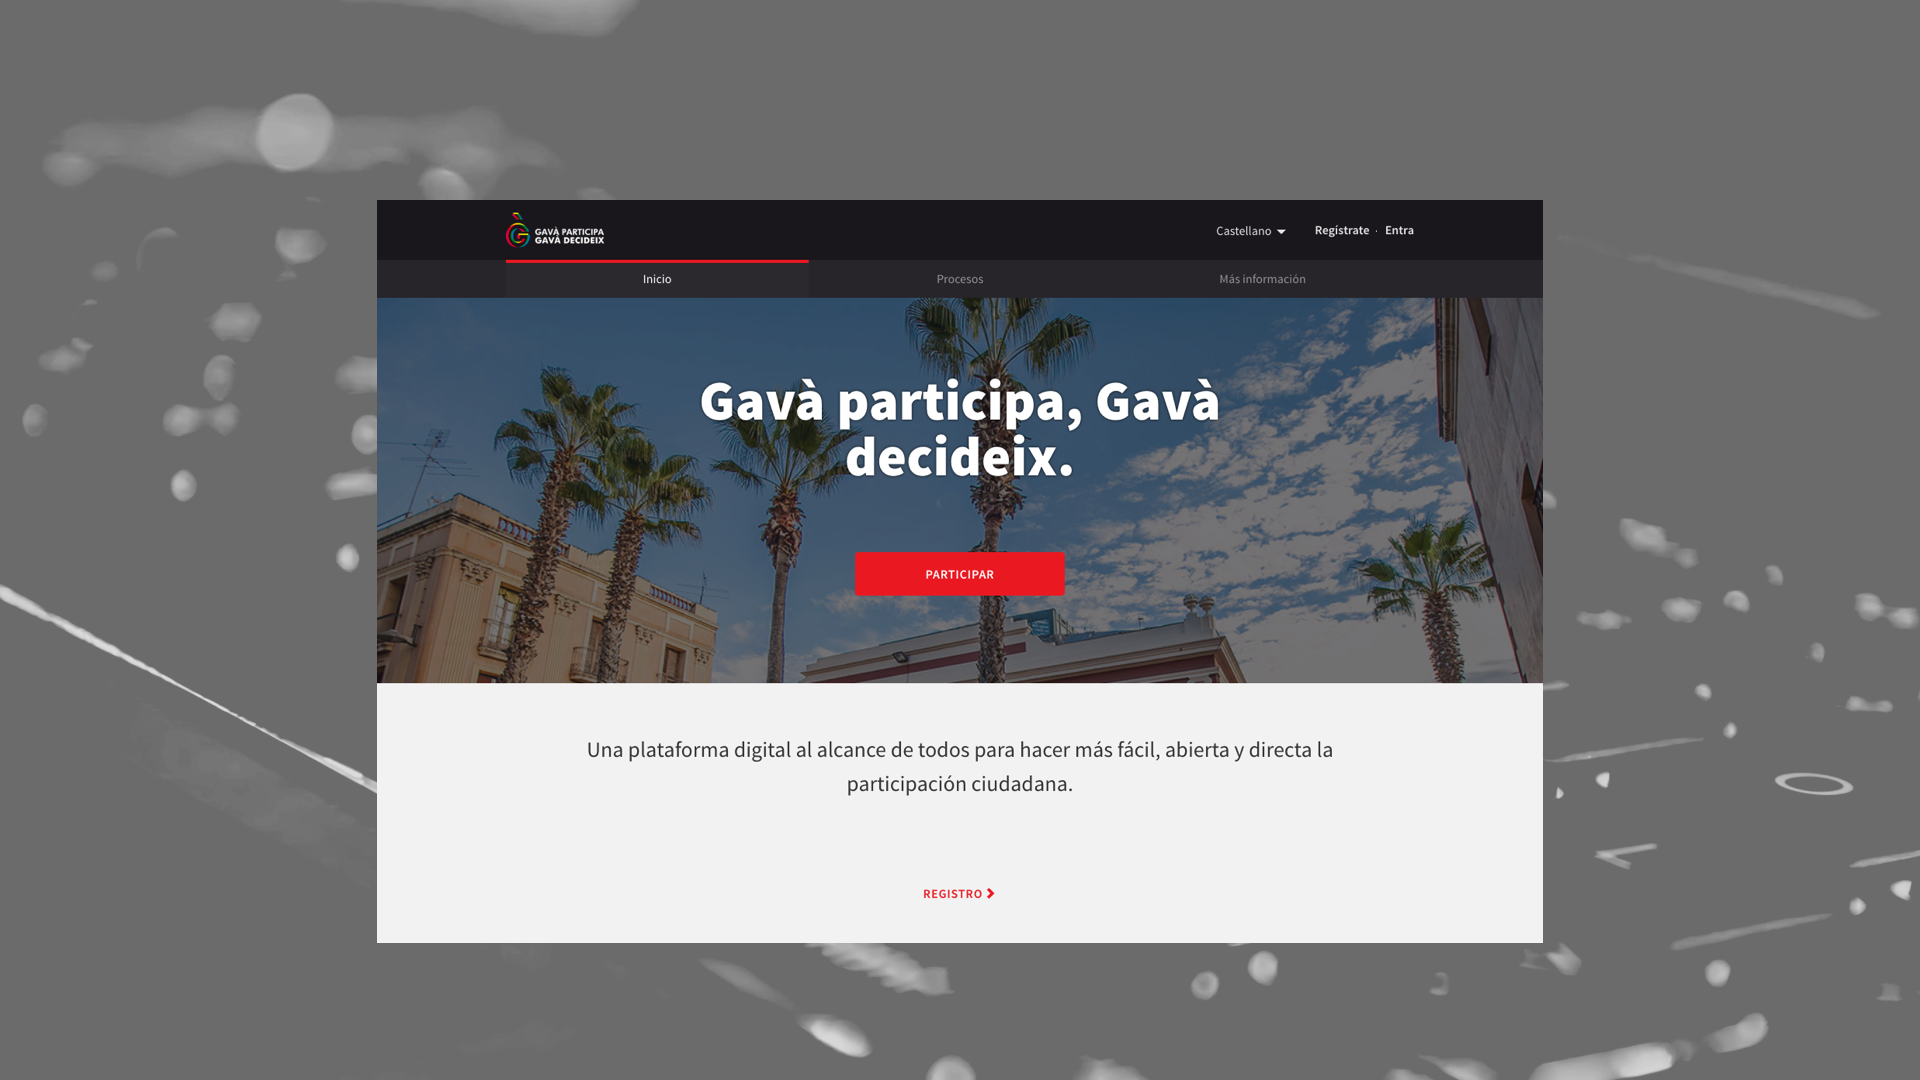 Design of the democratic participation platform Decidim of the Gavà City Council